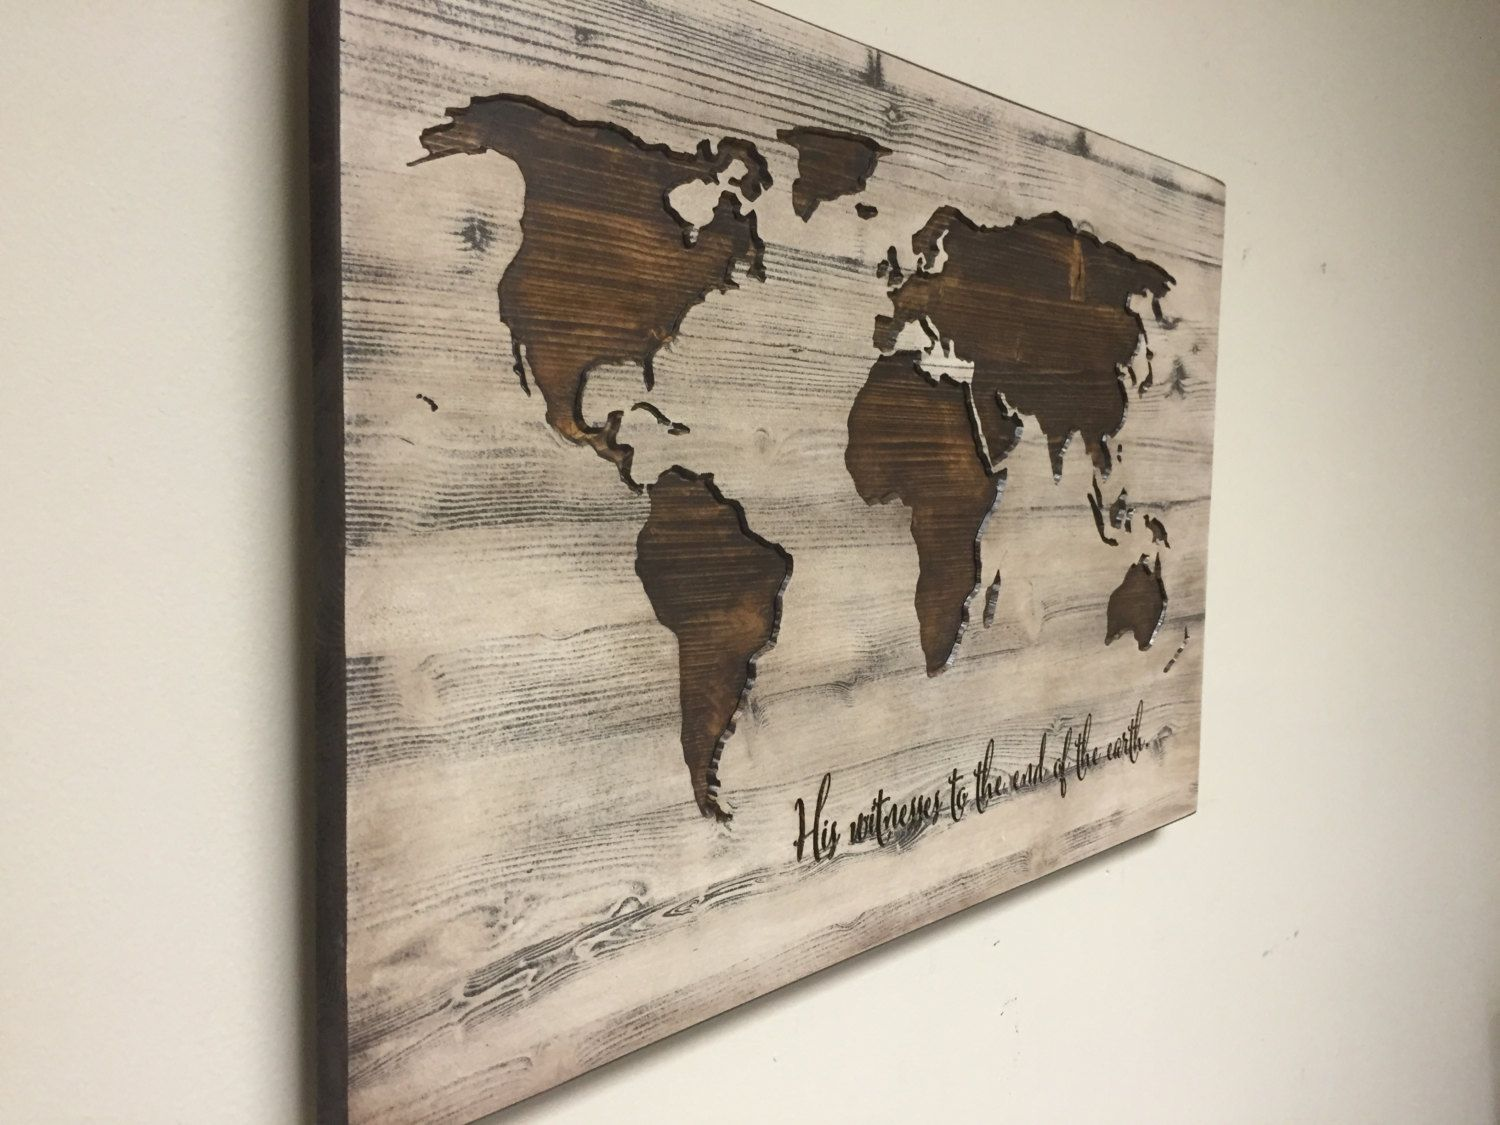 World map wall art spiritual vintage carved wood map his witness world map wall art spiritual vintage carved wood map his witness to the gumiabroncs